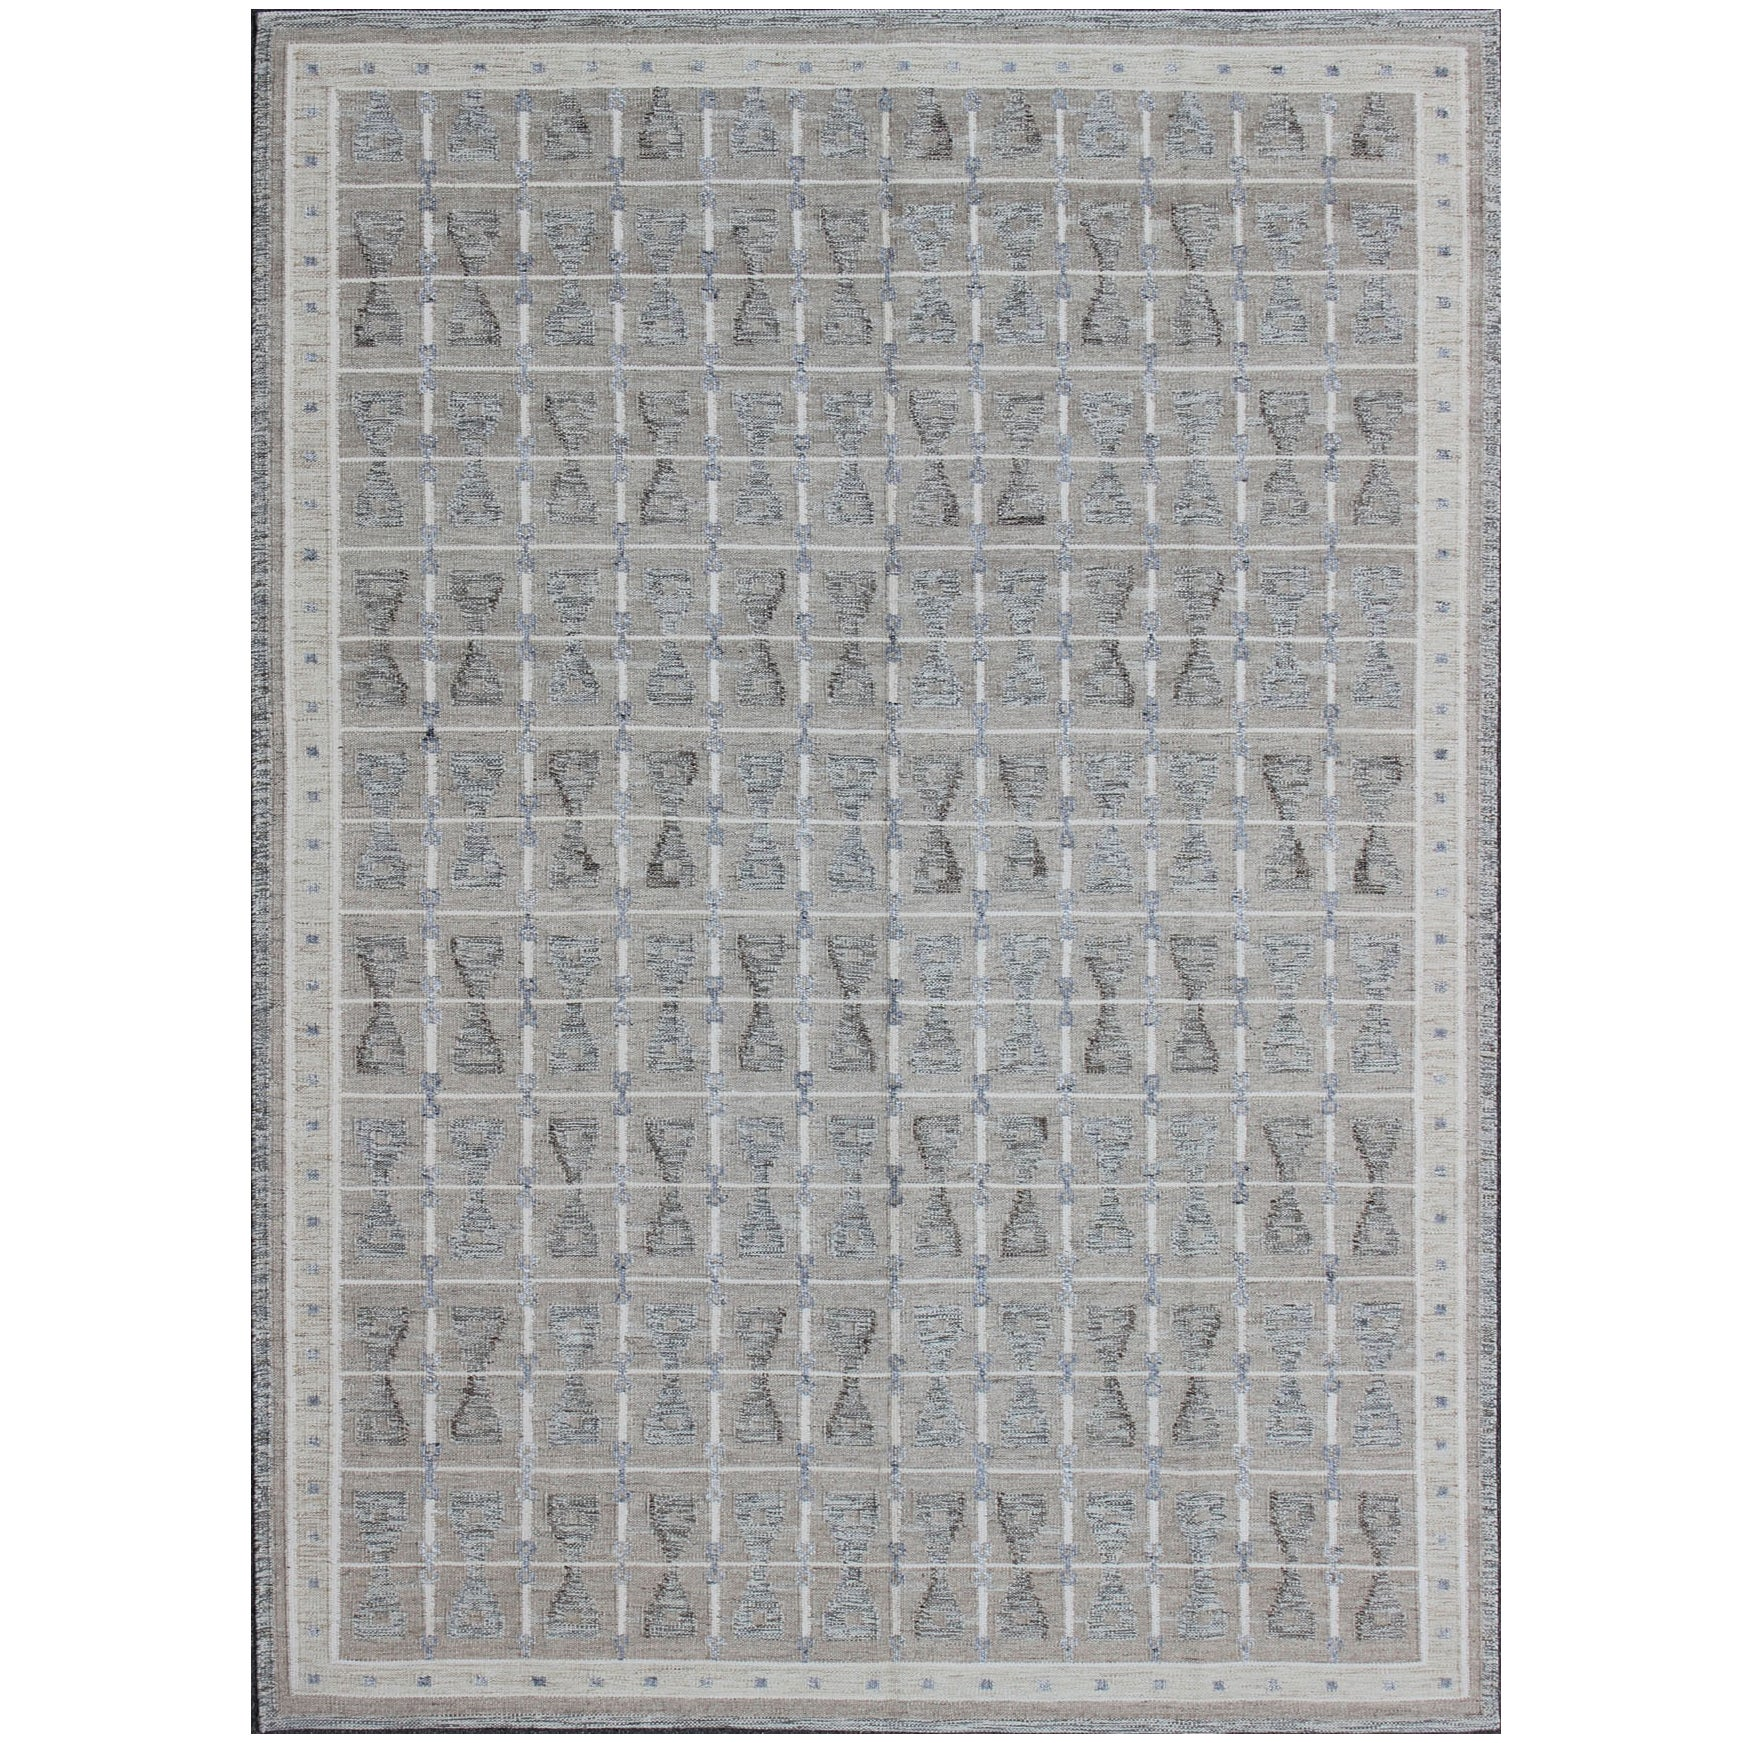 Large Modern Scandinavian/Swedish Flat-Weave Geometric Design Rug